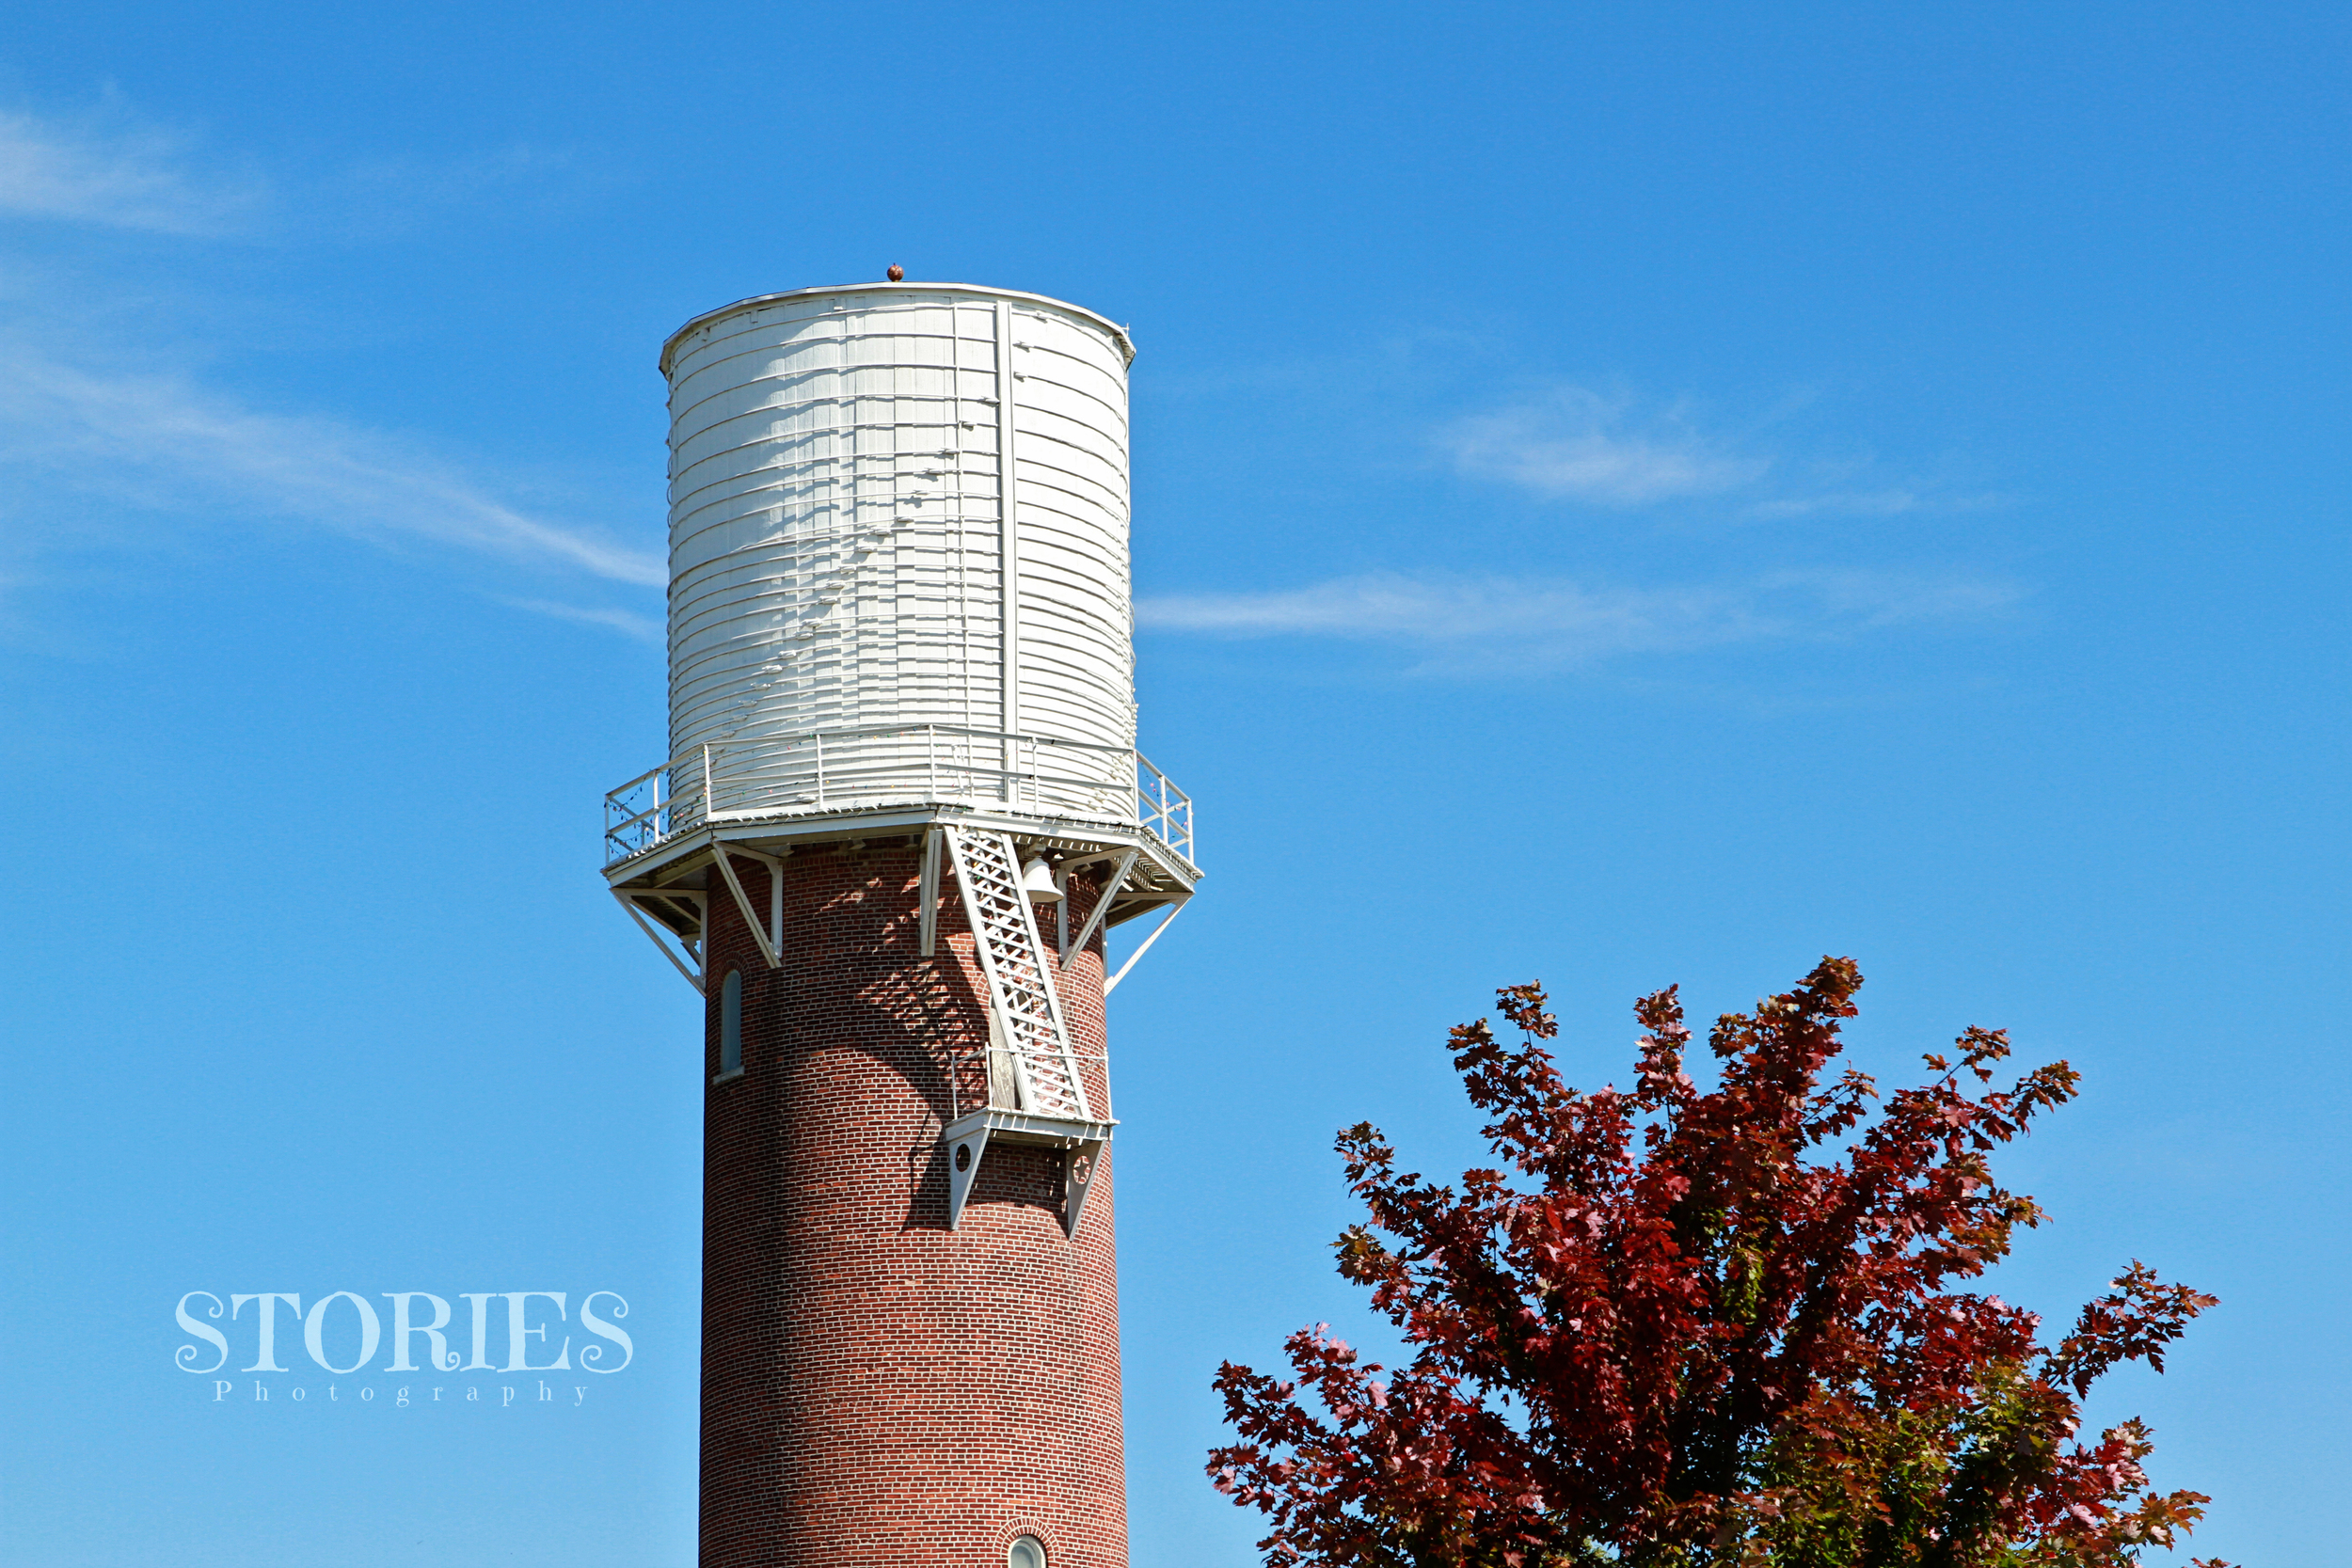 Water tower days